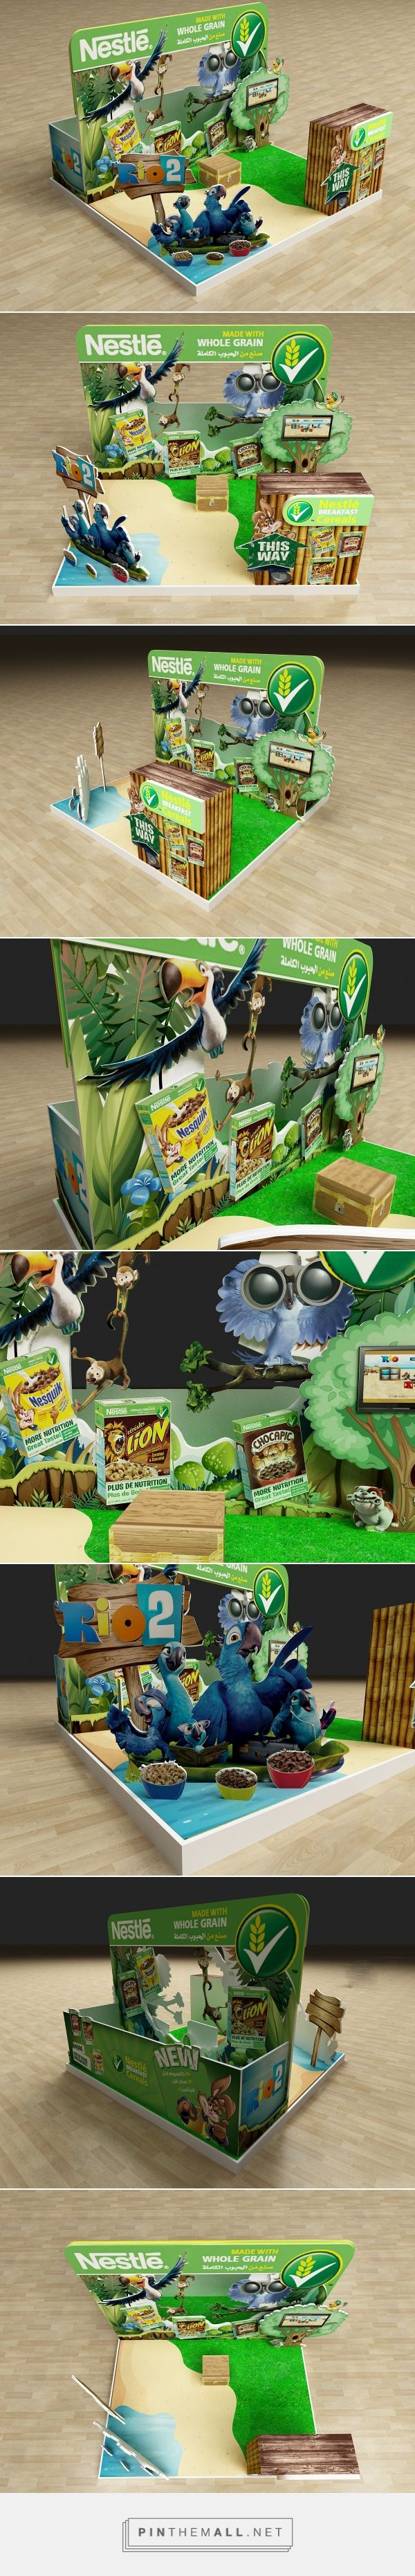 Nestle Rio2 Activation Booth on Behance     https://www.behance.net/gallery/33002811/Nestle-Rio2-Activation-Booth - created via https://pinthemall.net